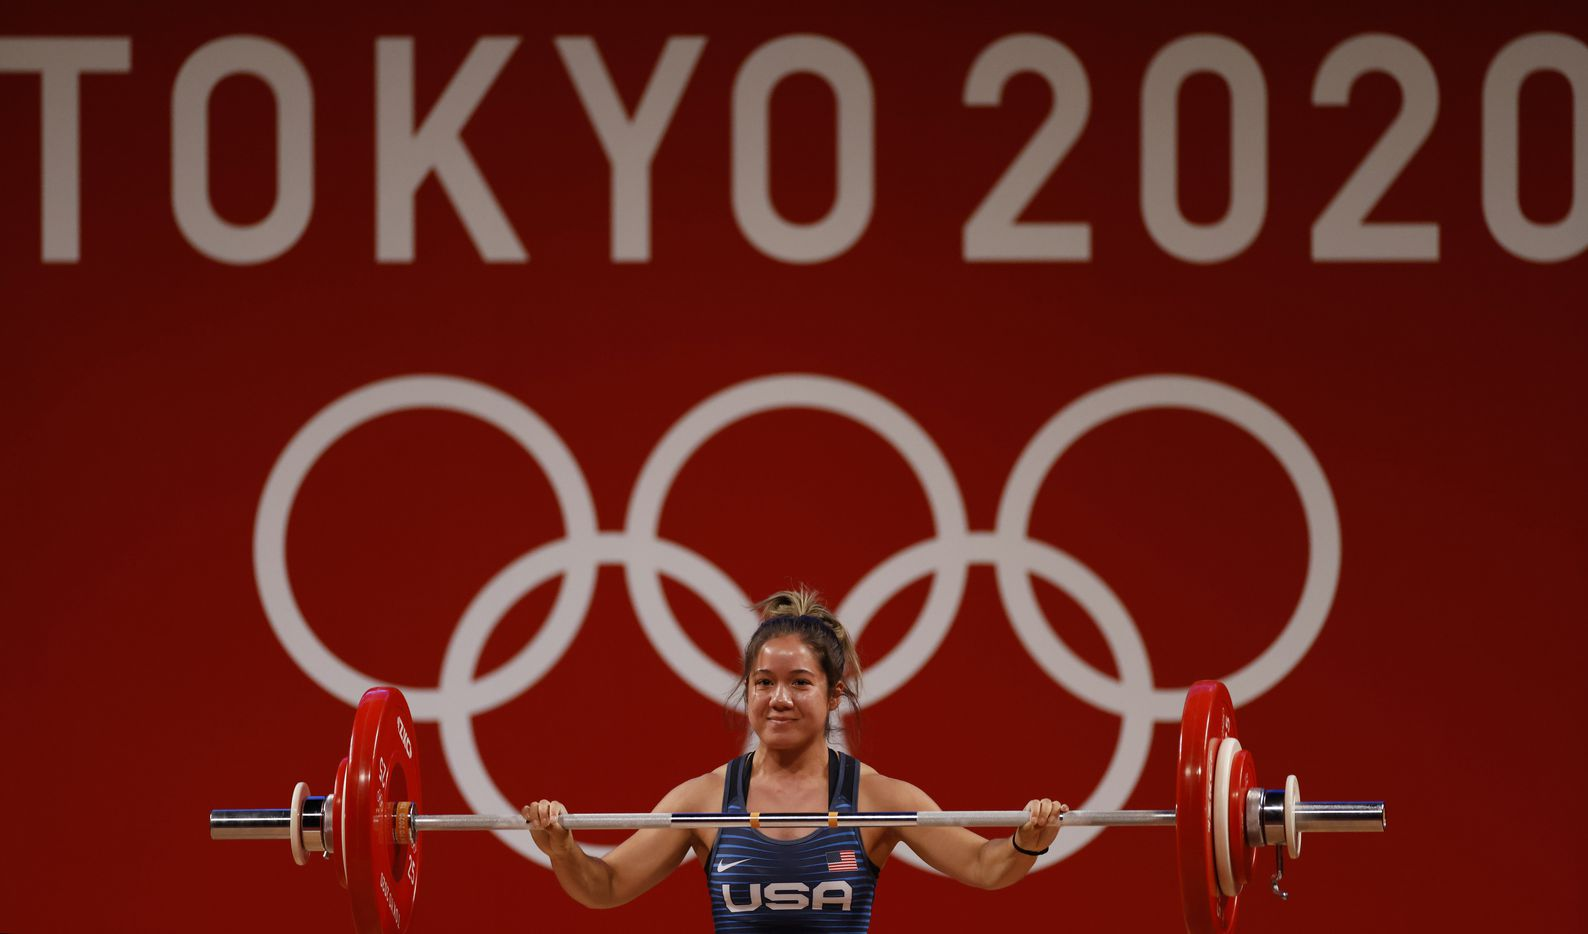 USA's Jourdan Delacruz smiles after lifting 83 kg in the first attempt of the snatch round during the women's 49 kg weightlifting final during the postponed 2020 Tokyo Olympics at Tokyo International Forum on Saturday, July 24, 2021, in Tokyo, Japan. (Vernon Bryant/The Dallas Morning News)